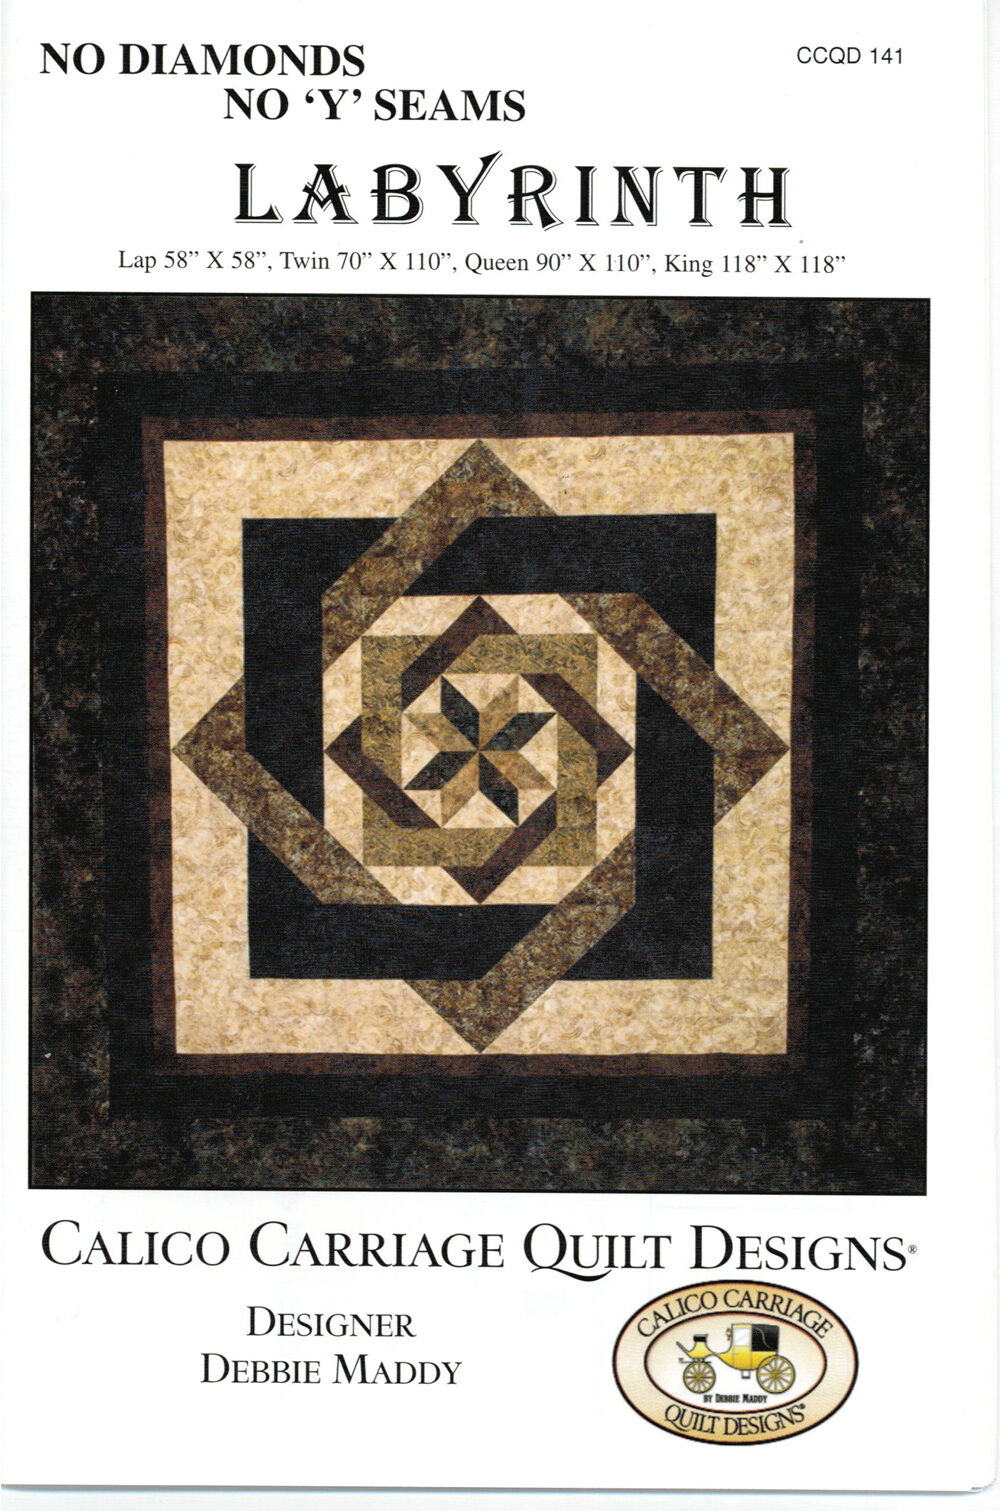 Labyrinth Quilt Pattern By Calico Carriage Quilt Designs No Diamonds / y Seams